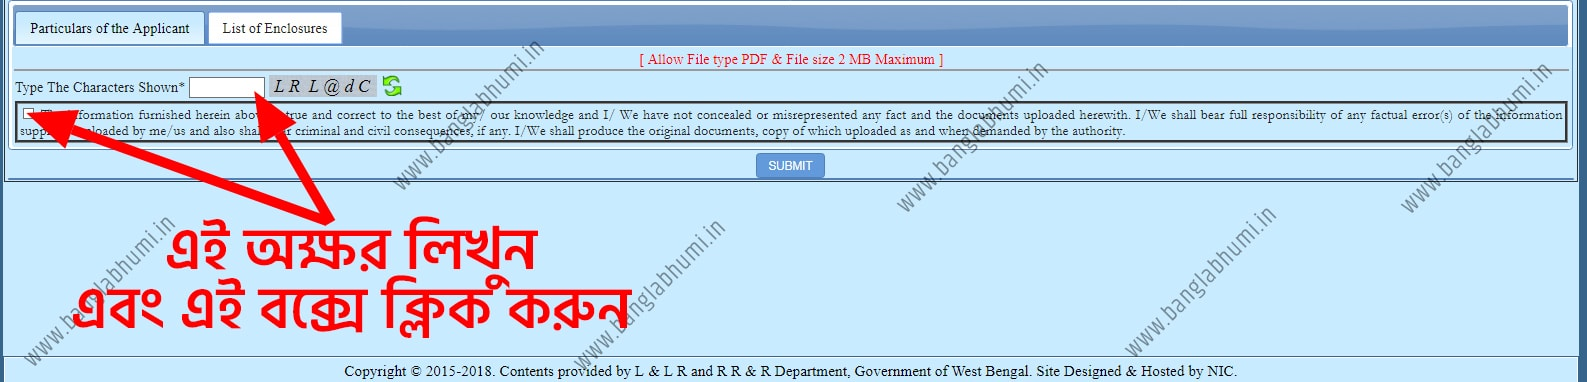 Banglarbhumi Online Conversion Application of West Bengal Land & Land Reforms Department